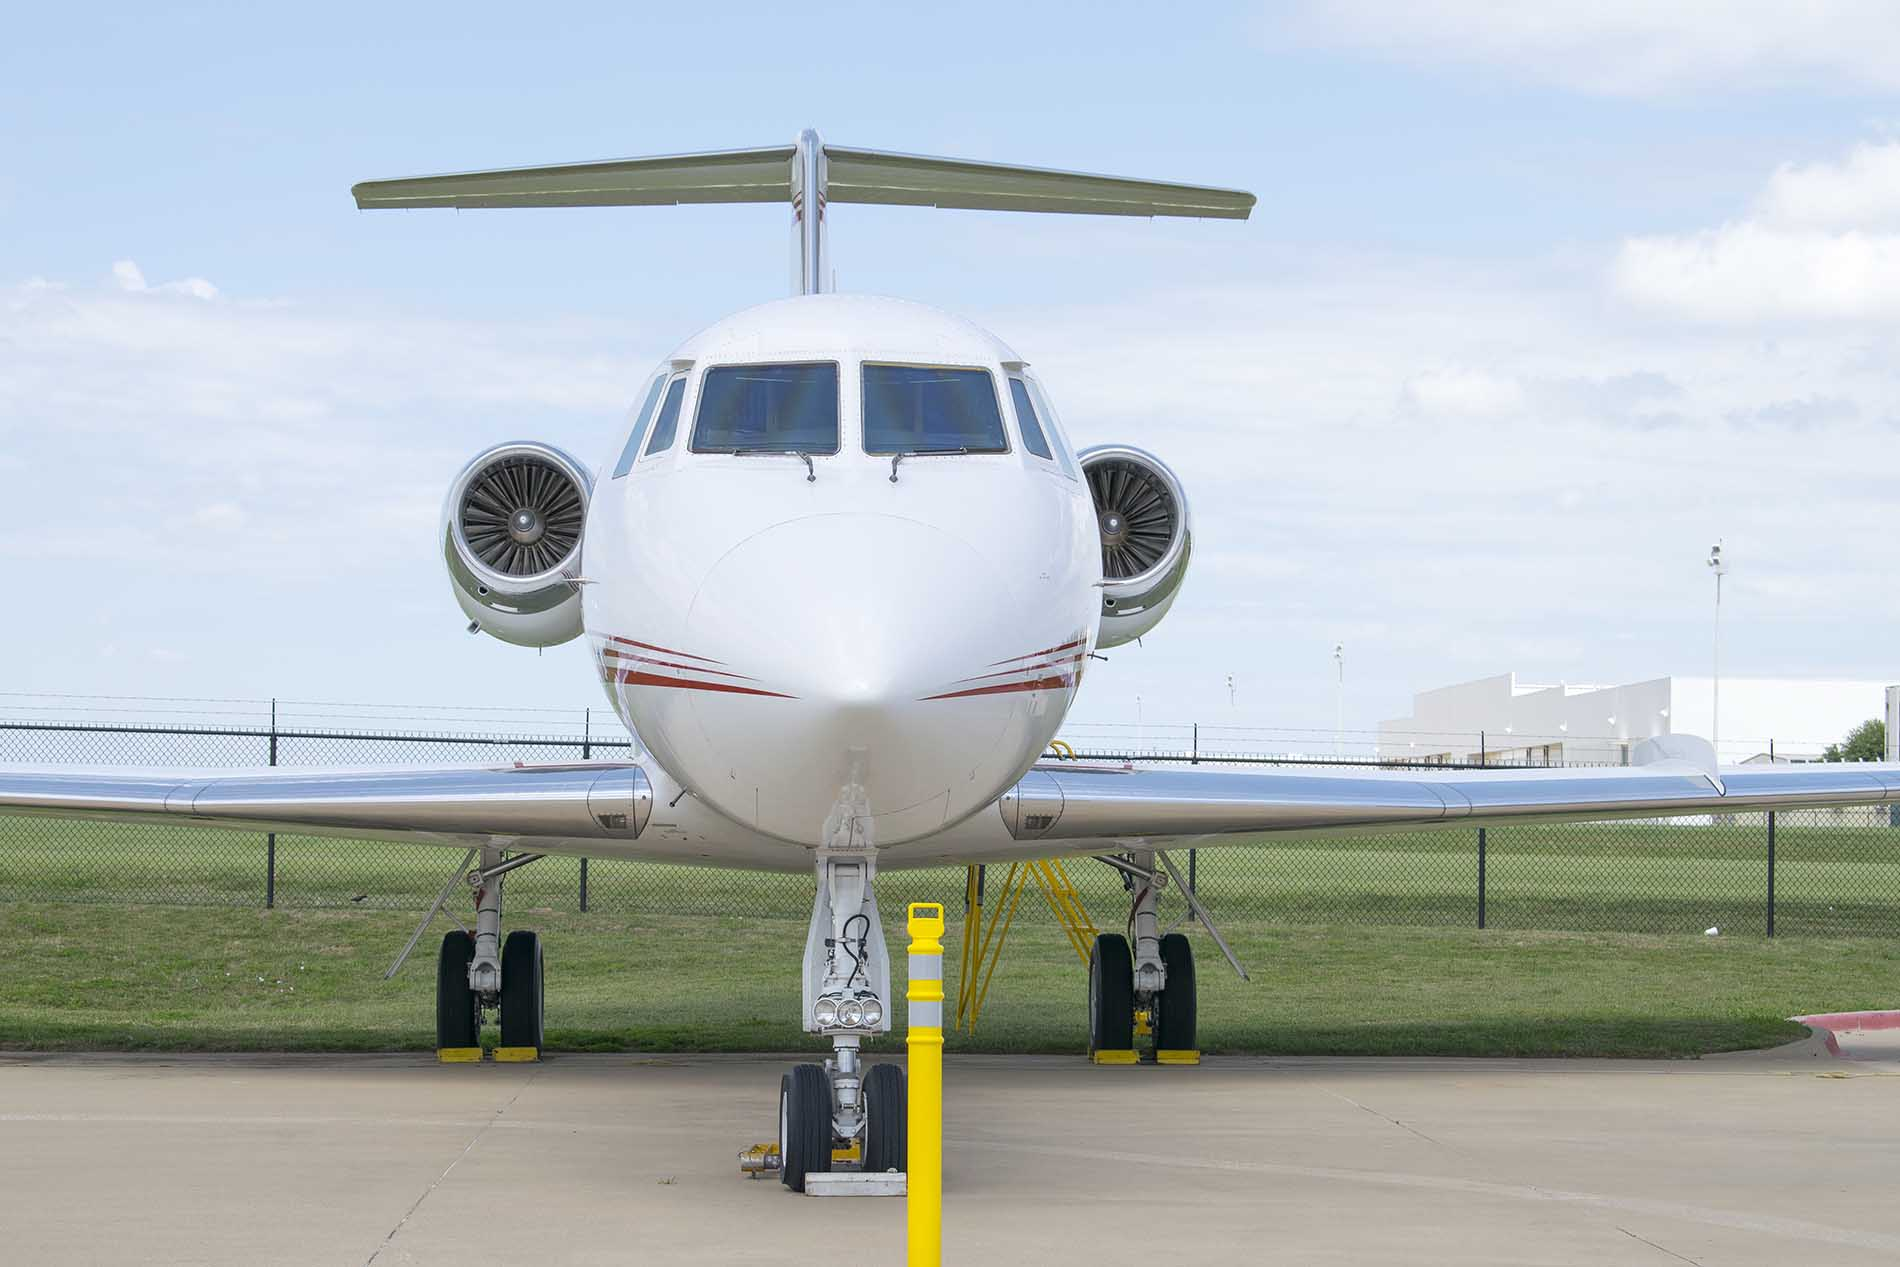 The G-II plane was built in 1979 and was owned by multinational oil service corporation Halliburton.